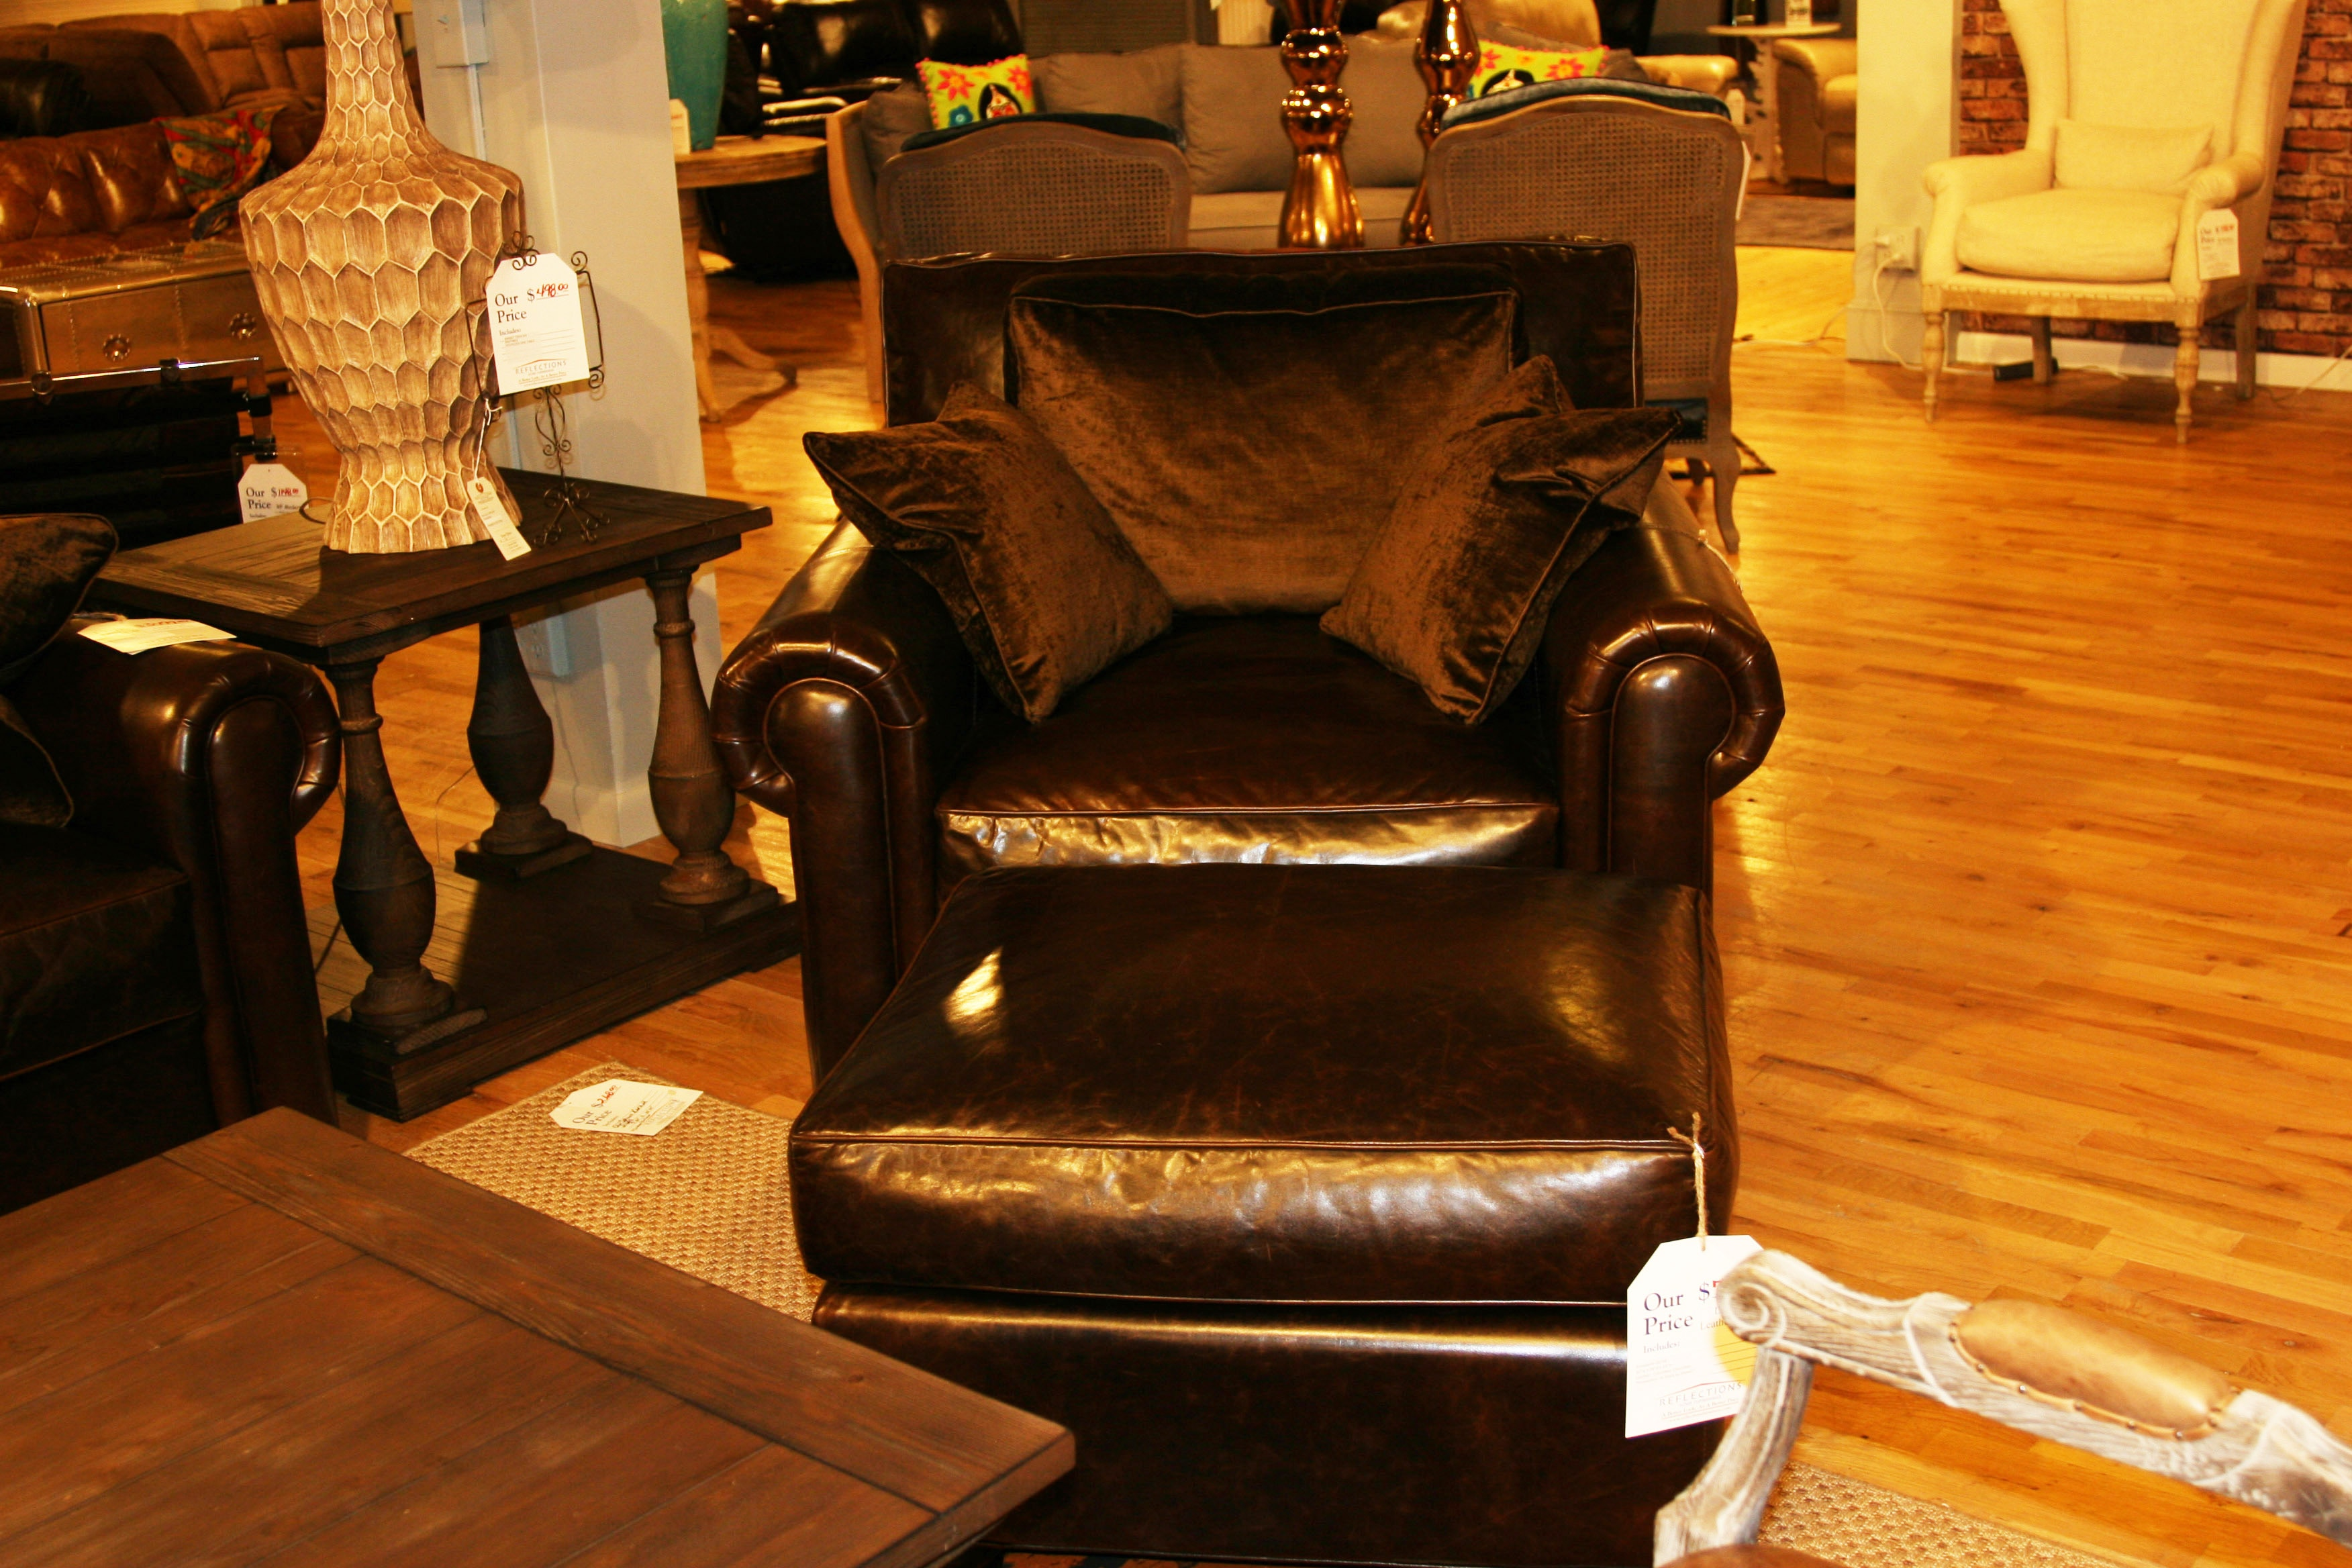 RF Modern By Reflections Living Room Landmark Leather Chair By Reflections  (SKU: Annabelle Chair) Is Available At Hickory Furniture Mart In Hickory,  ...